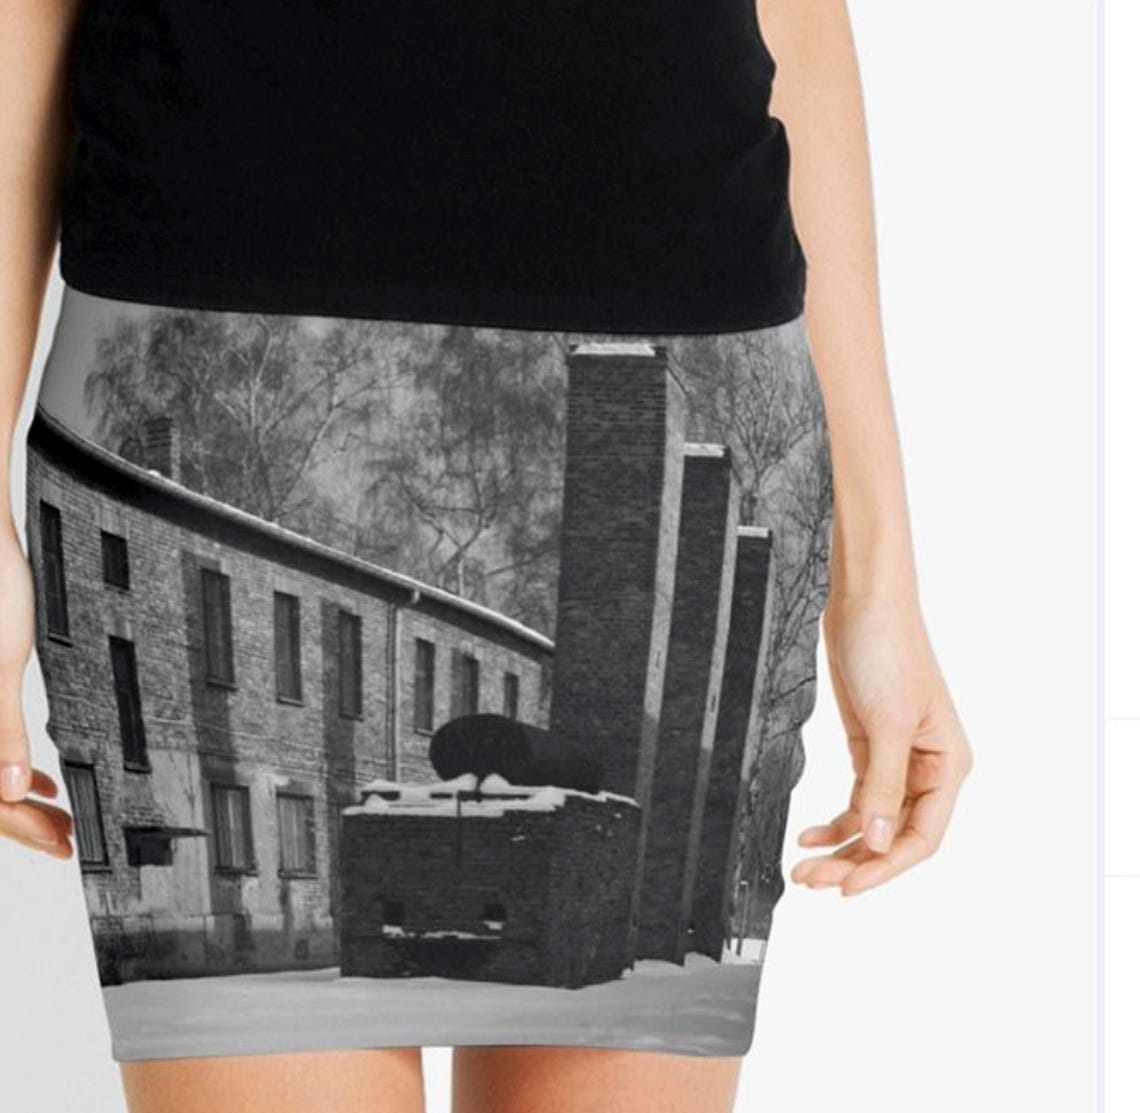 Auschwitz Museum protests camp photos on skirts and pillows